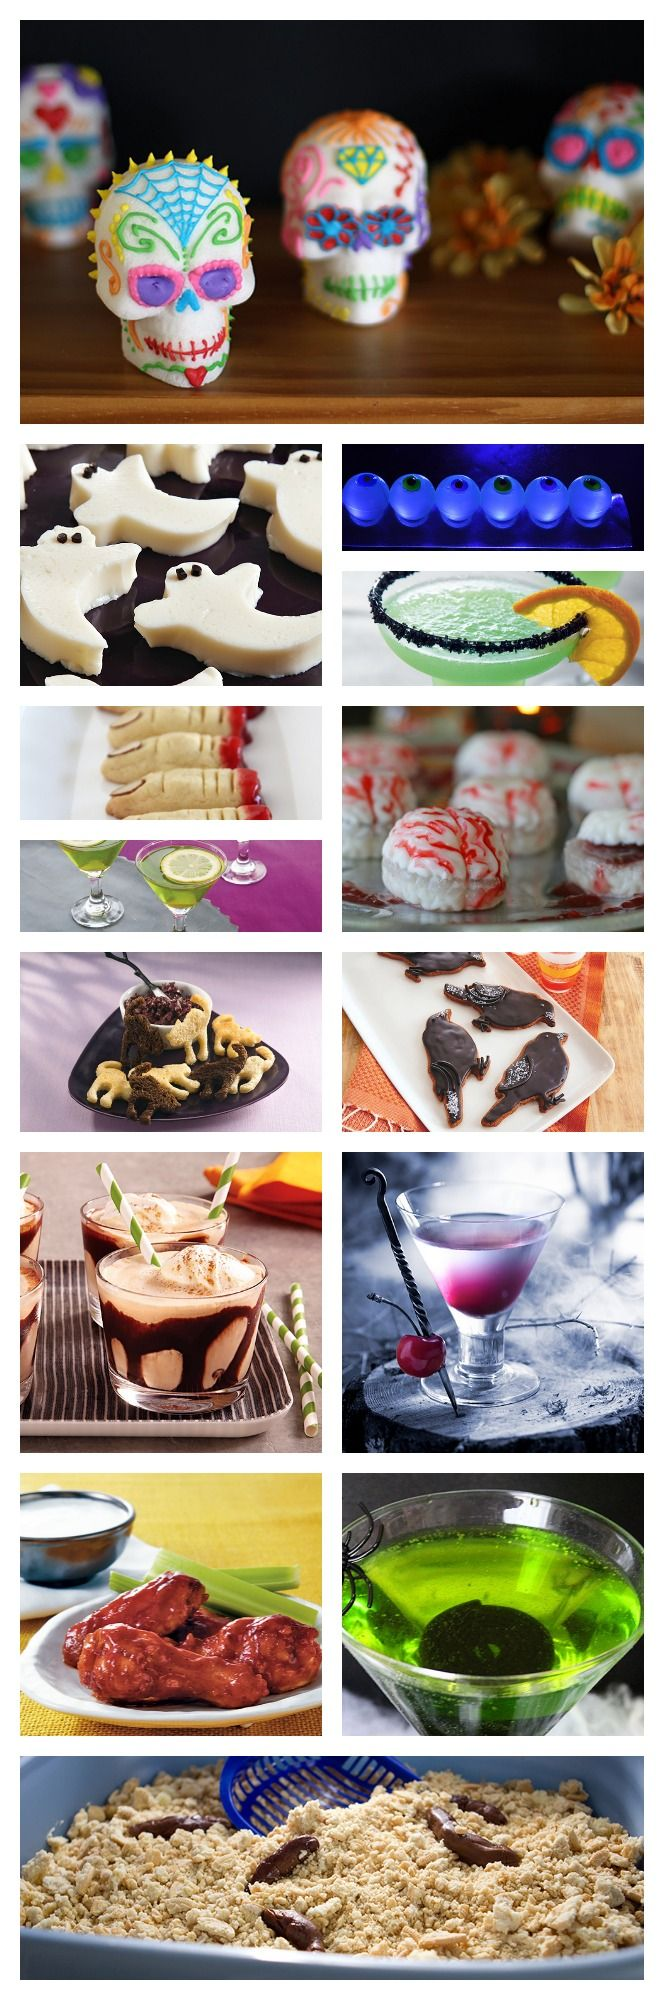 14 killer Halloween party food and drink recipes that will make sure all of your guests have a frighteningly good time!